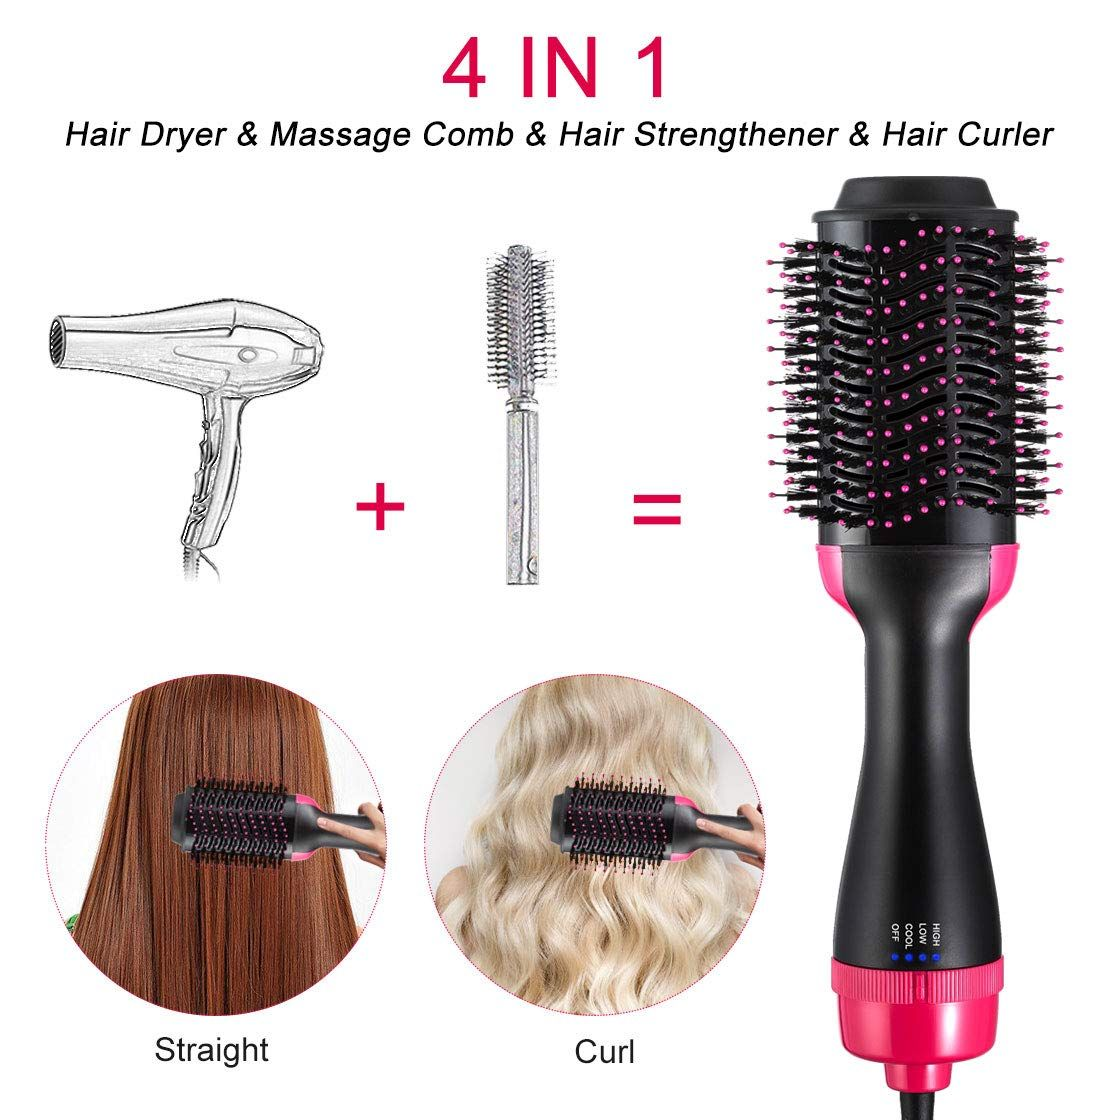 Professional One Step Hair Dryer Brush Volumizer Blow Straightener And Curler Salon 2 In 1 Electric Hot Air Curling Iron Comb Presspia Hair Dryer Brush Hair Dryer Hair Brush Blow Dryer